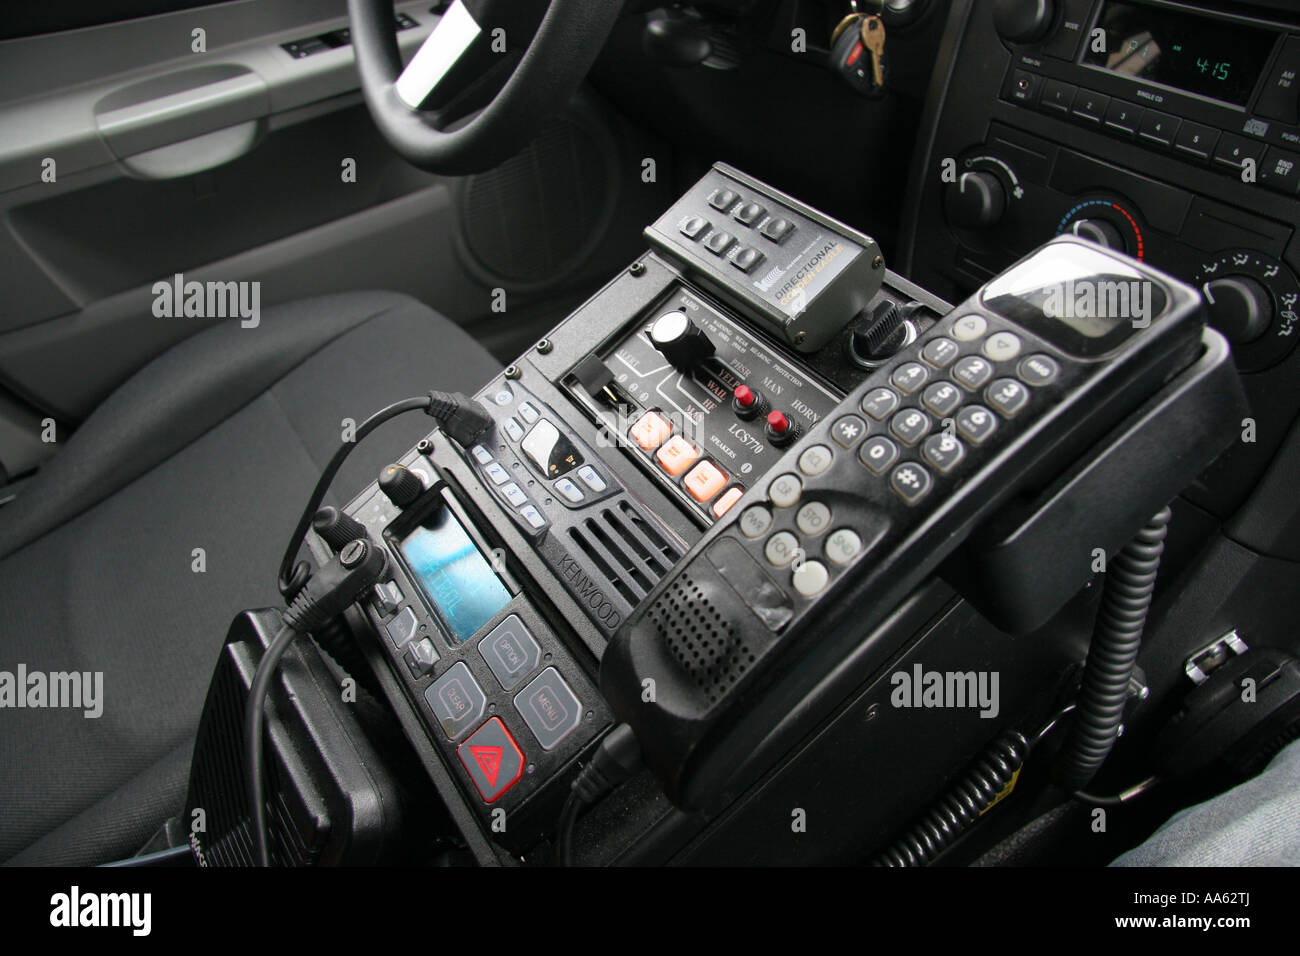 Le Meilleur Police Car Radio And Emergency Equipment Control Panel Ce Mois Ci